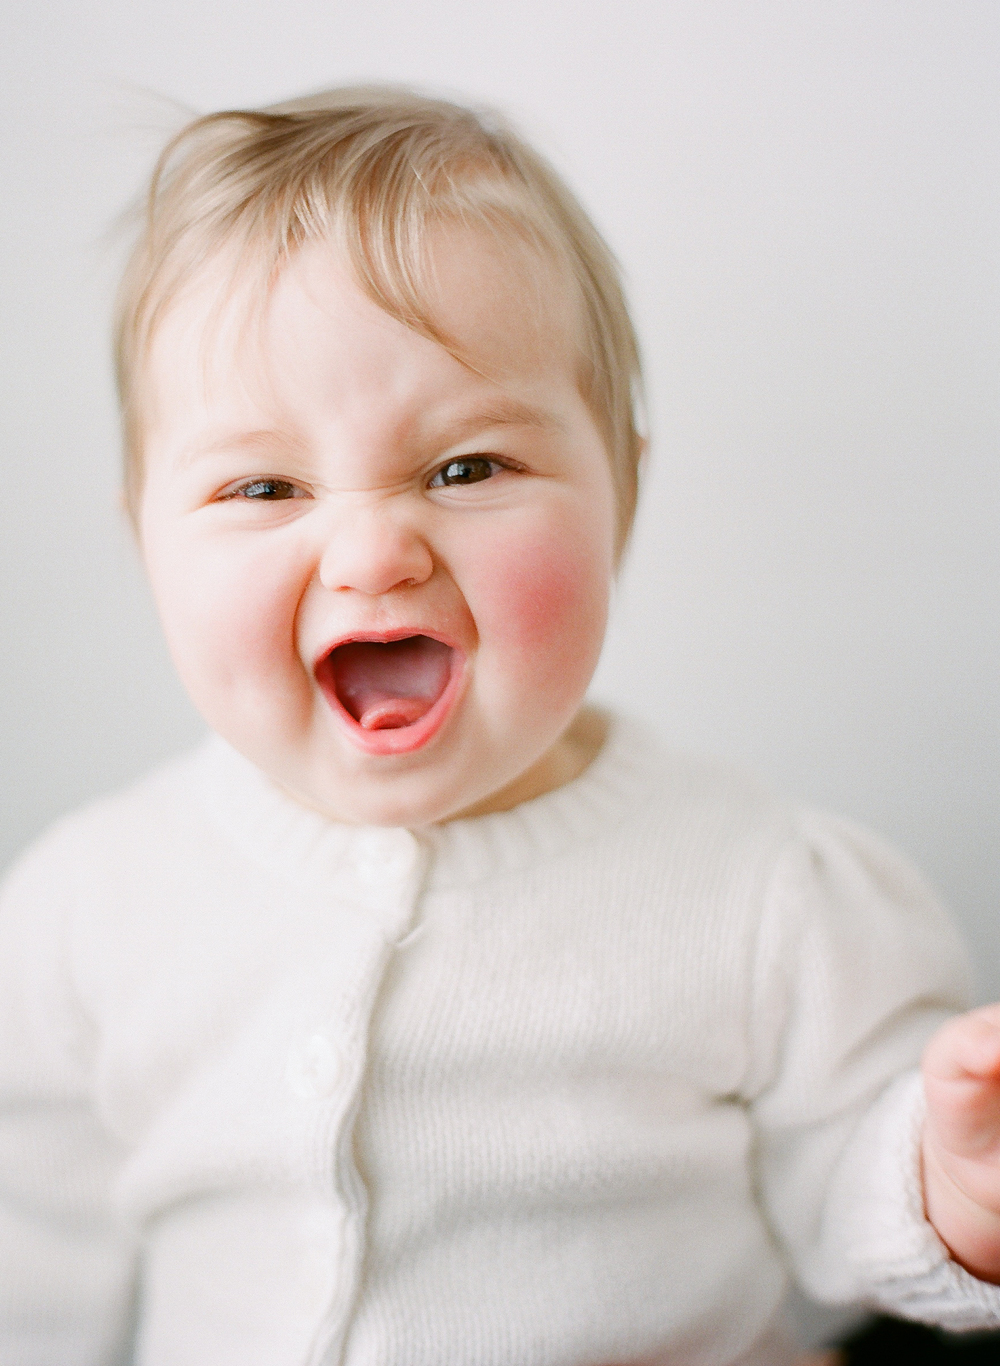 Baby photography Seattle, by Sandra Coan. Studio photograph. Baby laughing